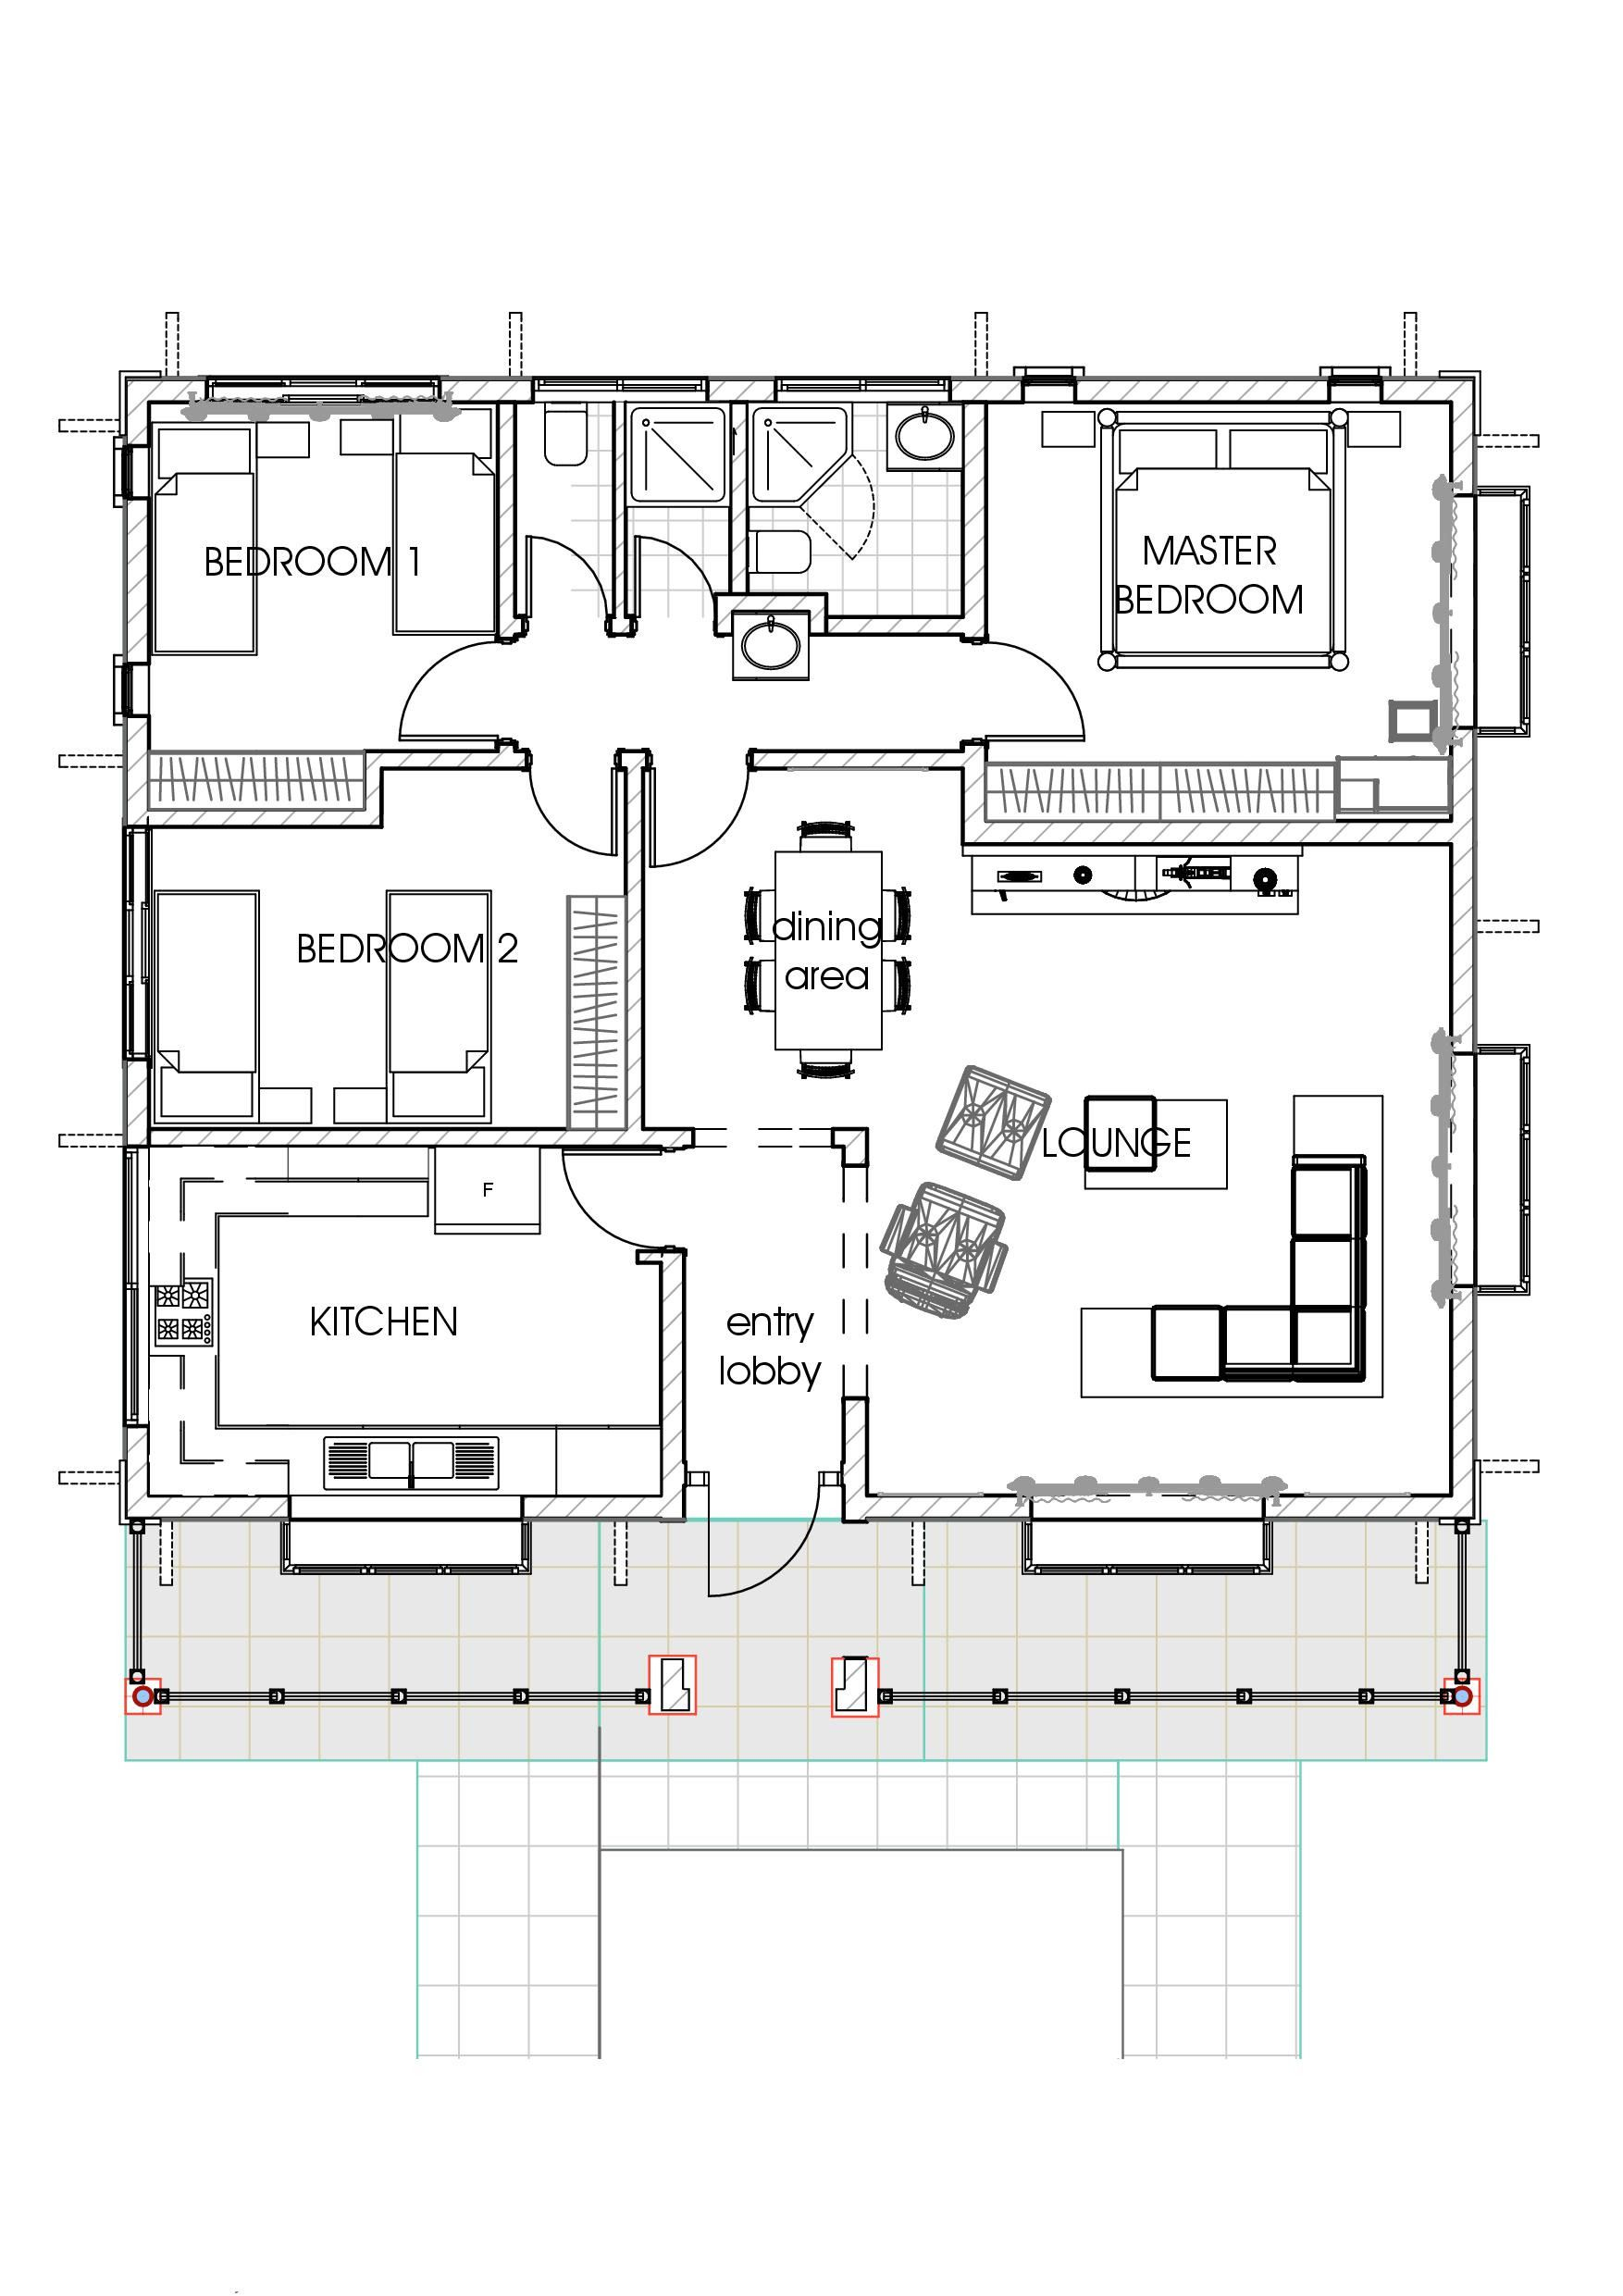 House Plans And Estimated Cost To Build 2020 In 2020 Three Bedroom House Plan Bedroom House Plans Bungalow House Floor Plans